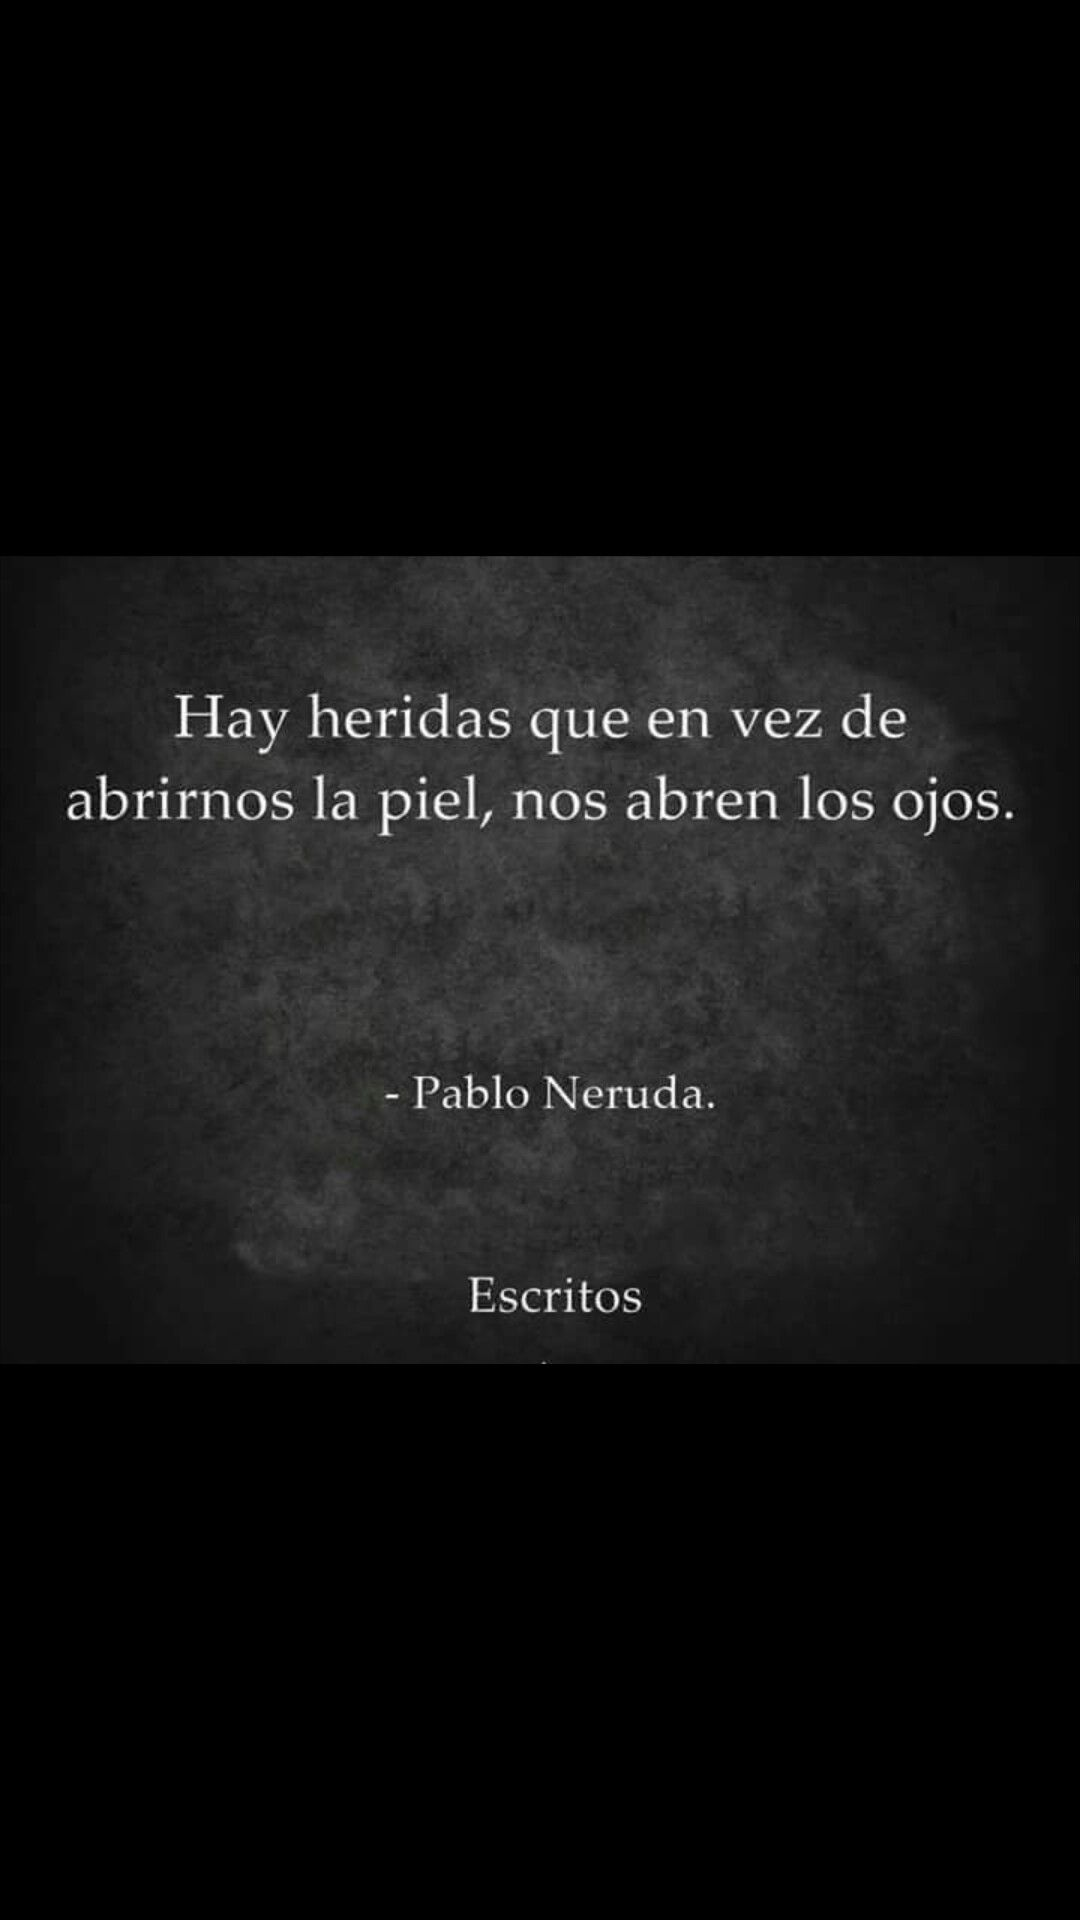 Spanish Quotes Famous Phrases Pablo Neruda Narcissistic Mother Life Thoughts Wisdom Words Motivational Quotes Brass Sadness